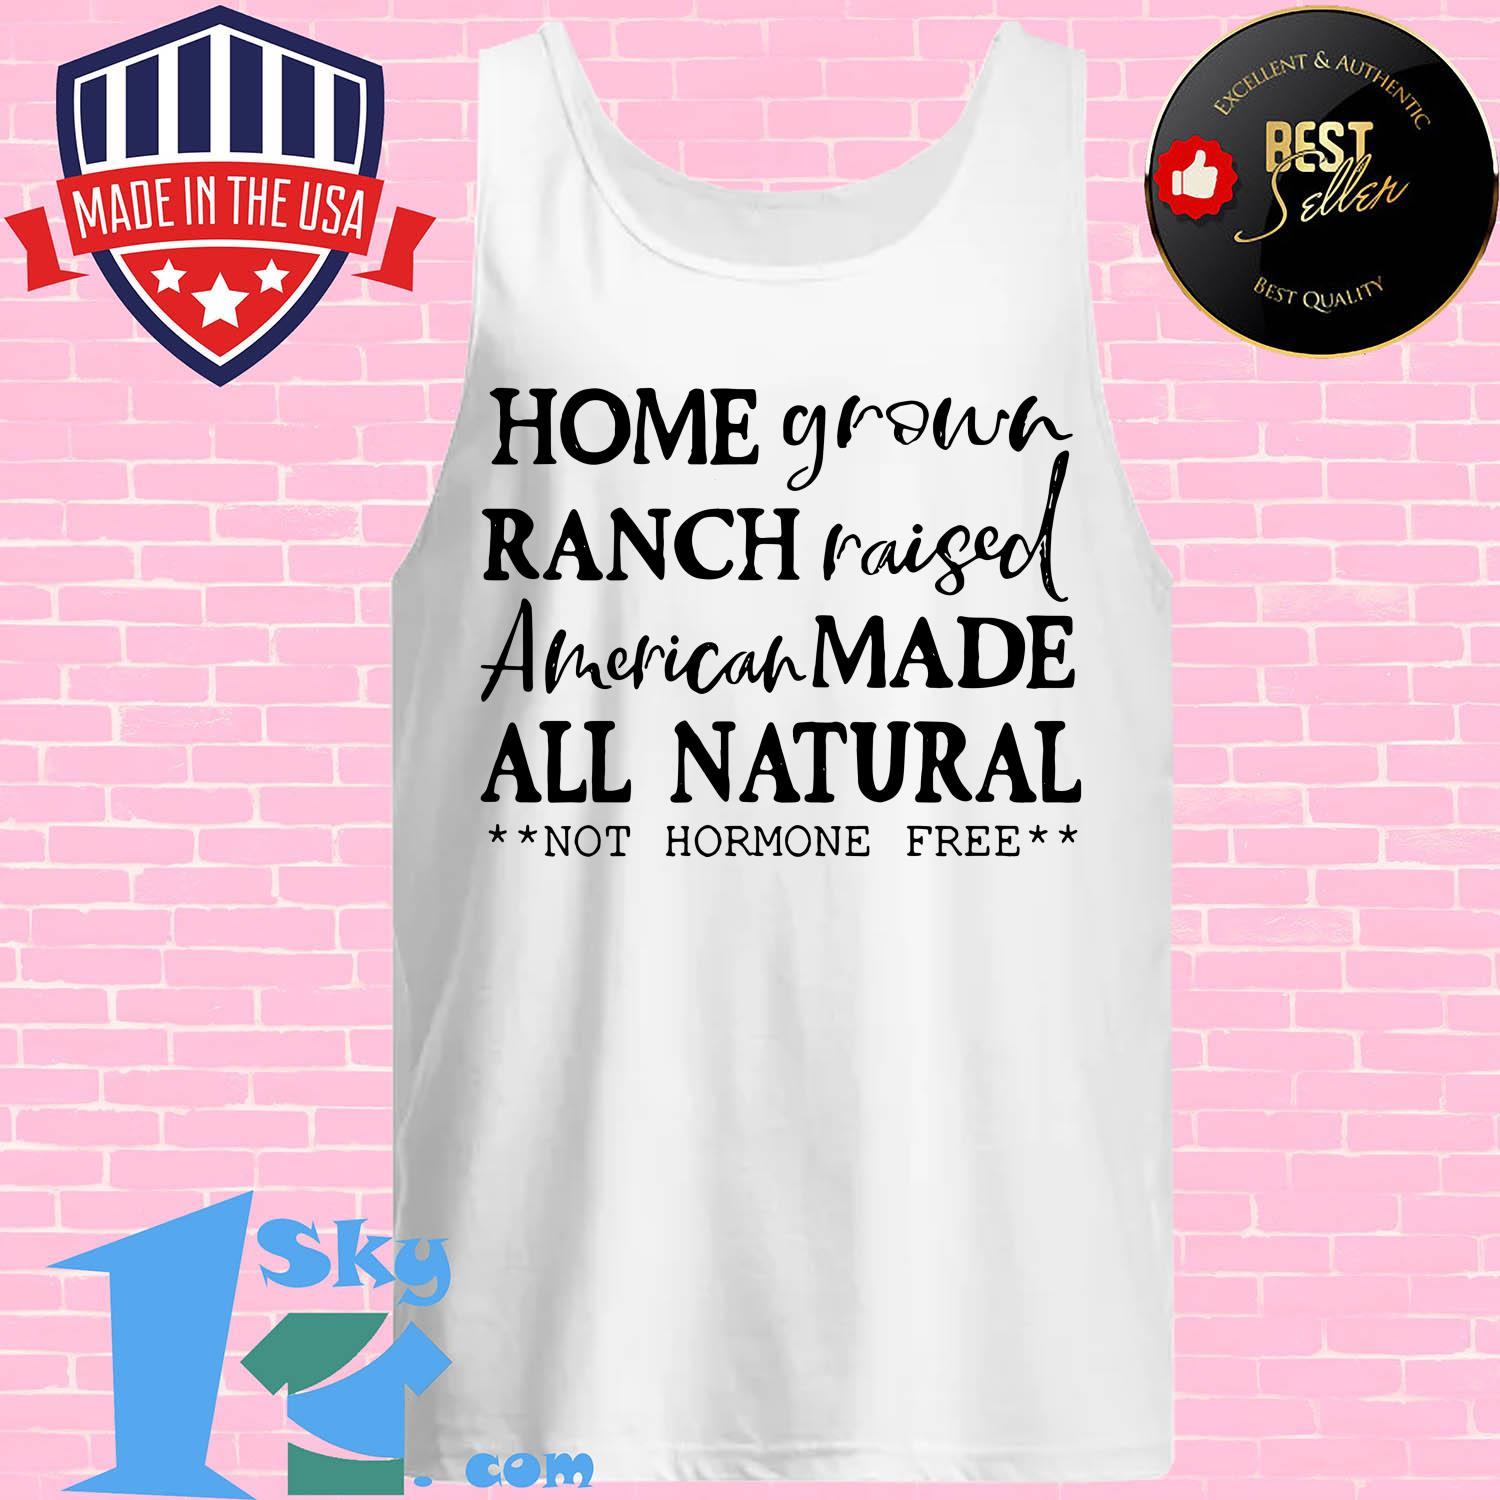 homegrown ranch raised american made all natural not hormone free tank top - Homegrown Ranch raised American made All Natural not Hormone free shirt